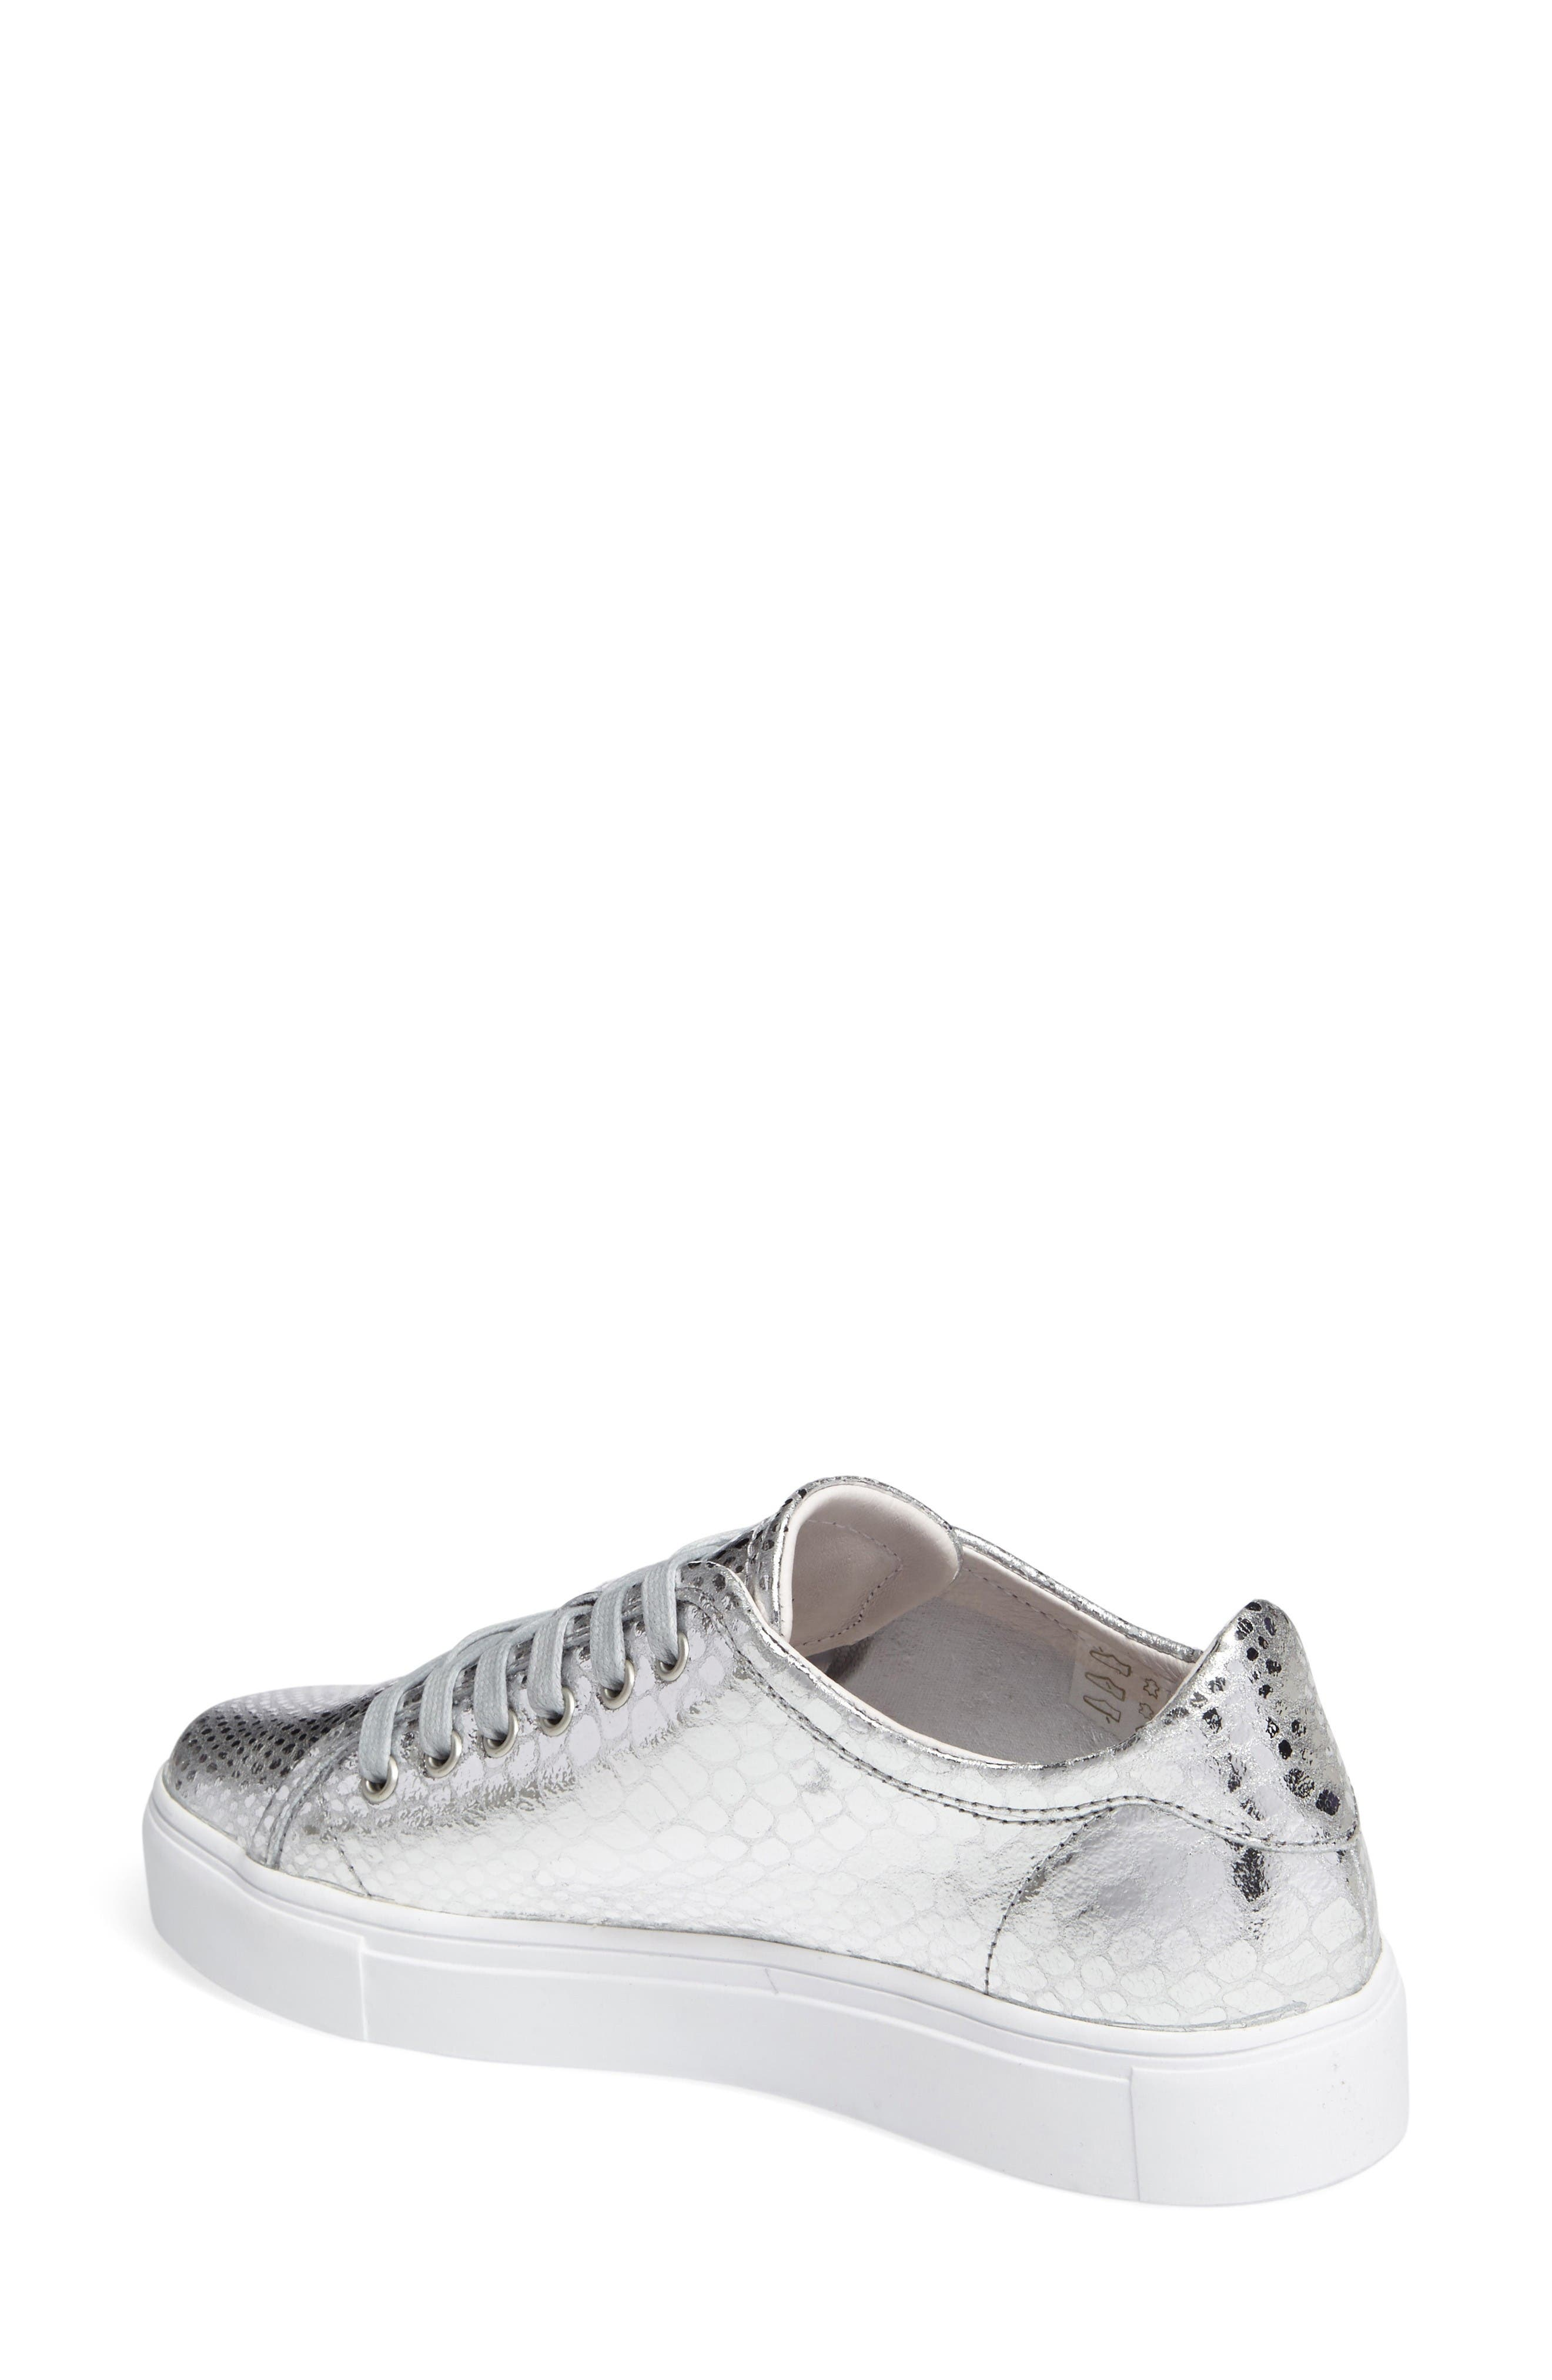 NL32 Sneaker,                             Alternate thumbnail 2, color,                             Silver Leather